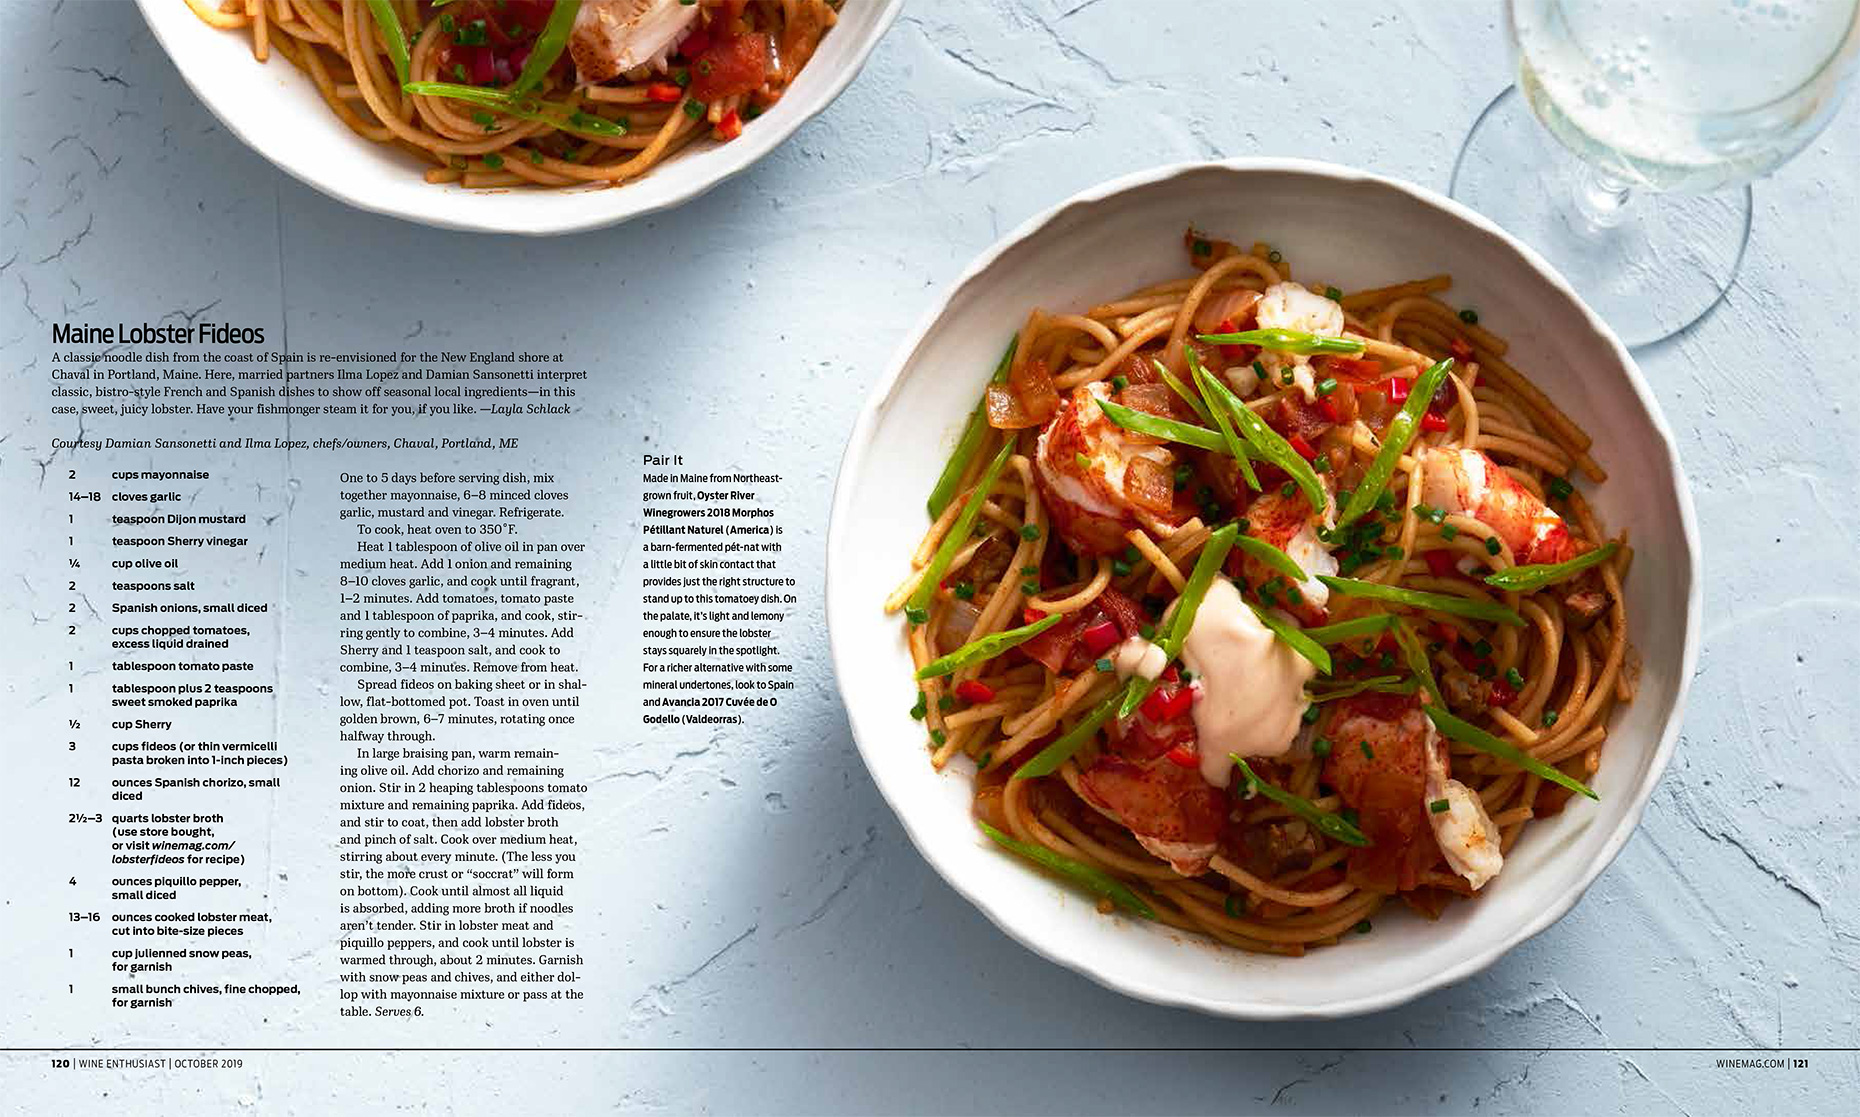 Wine Enthusiast Sea Fare Article about Maine Lobster, Food Styling by Takako Kuniyuki New York